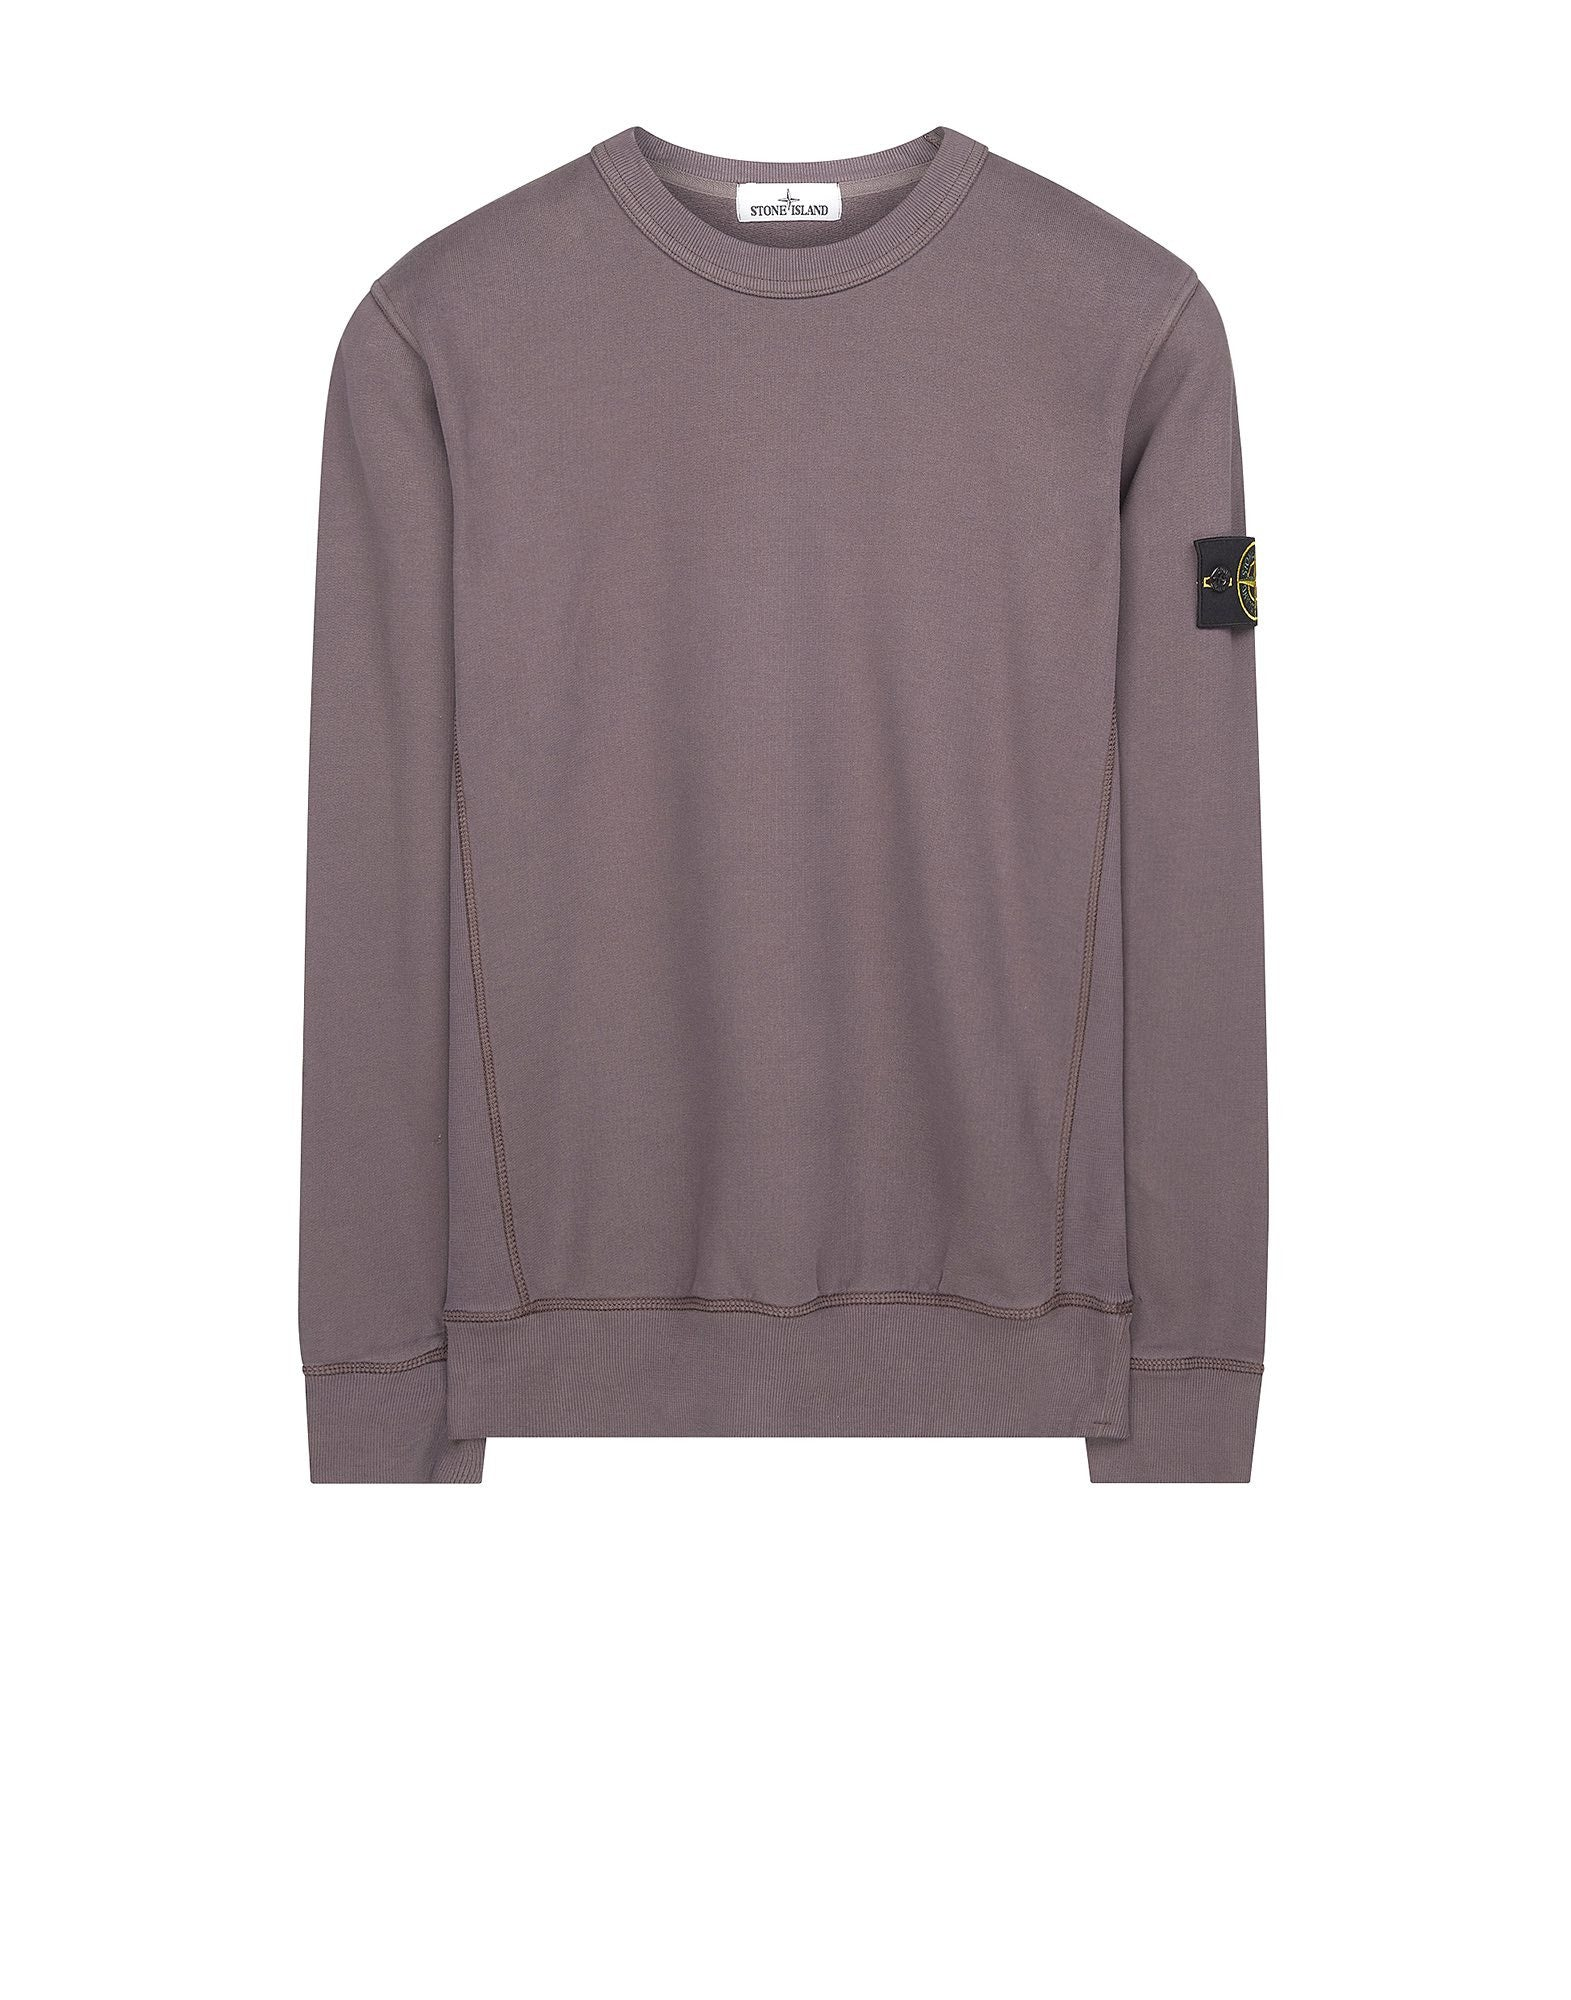 65320 Garment-Dyed Sweatshirt in Purple